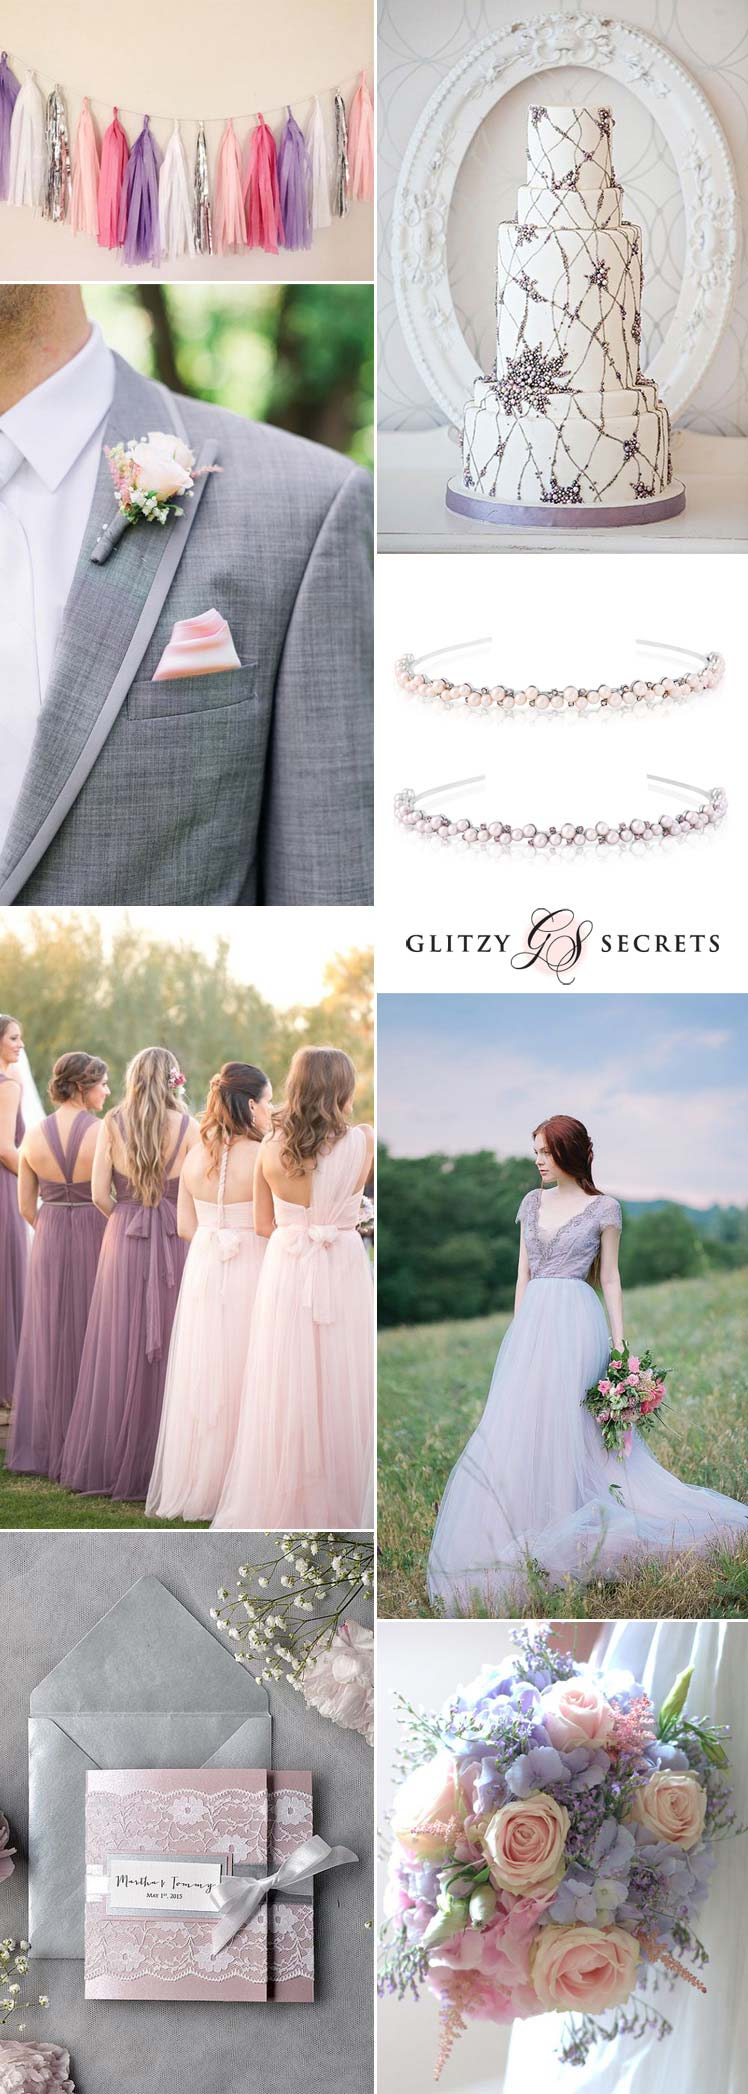 beautiful ideas for a pink lilac and silver wedding theme